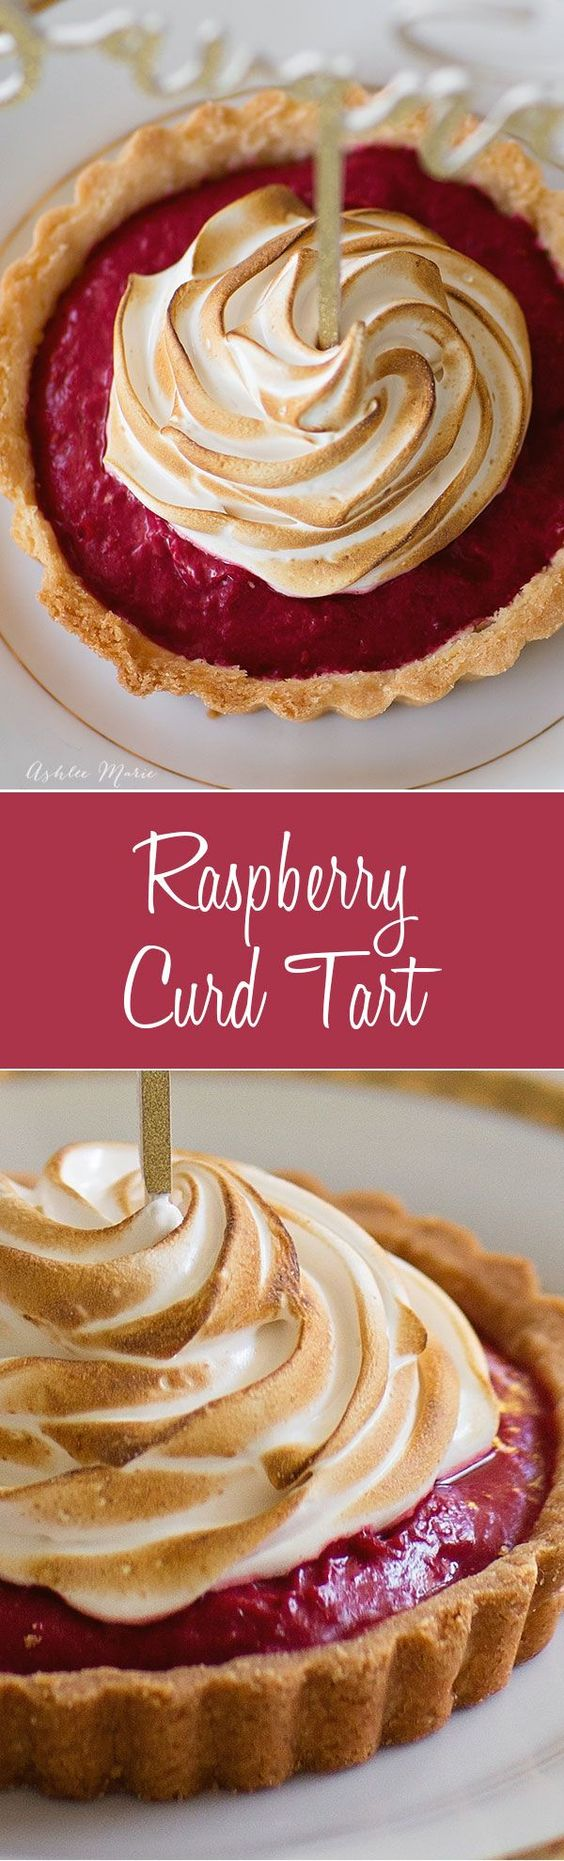 an amazing raspberry curd filling inside an amazing sweet crust and topped with a torched american meringue